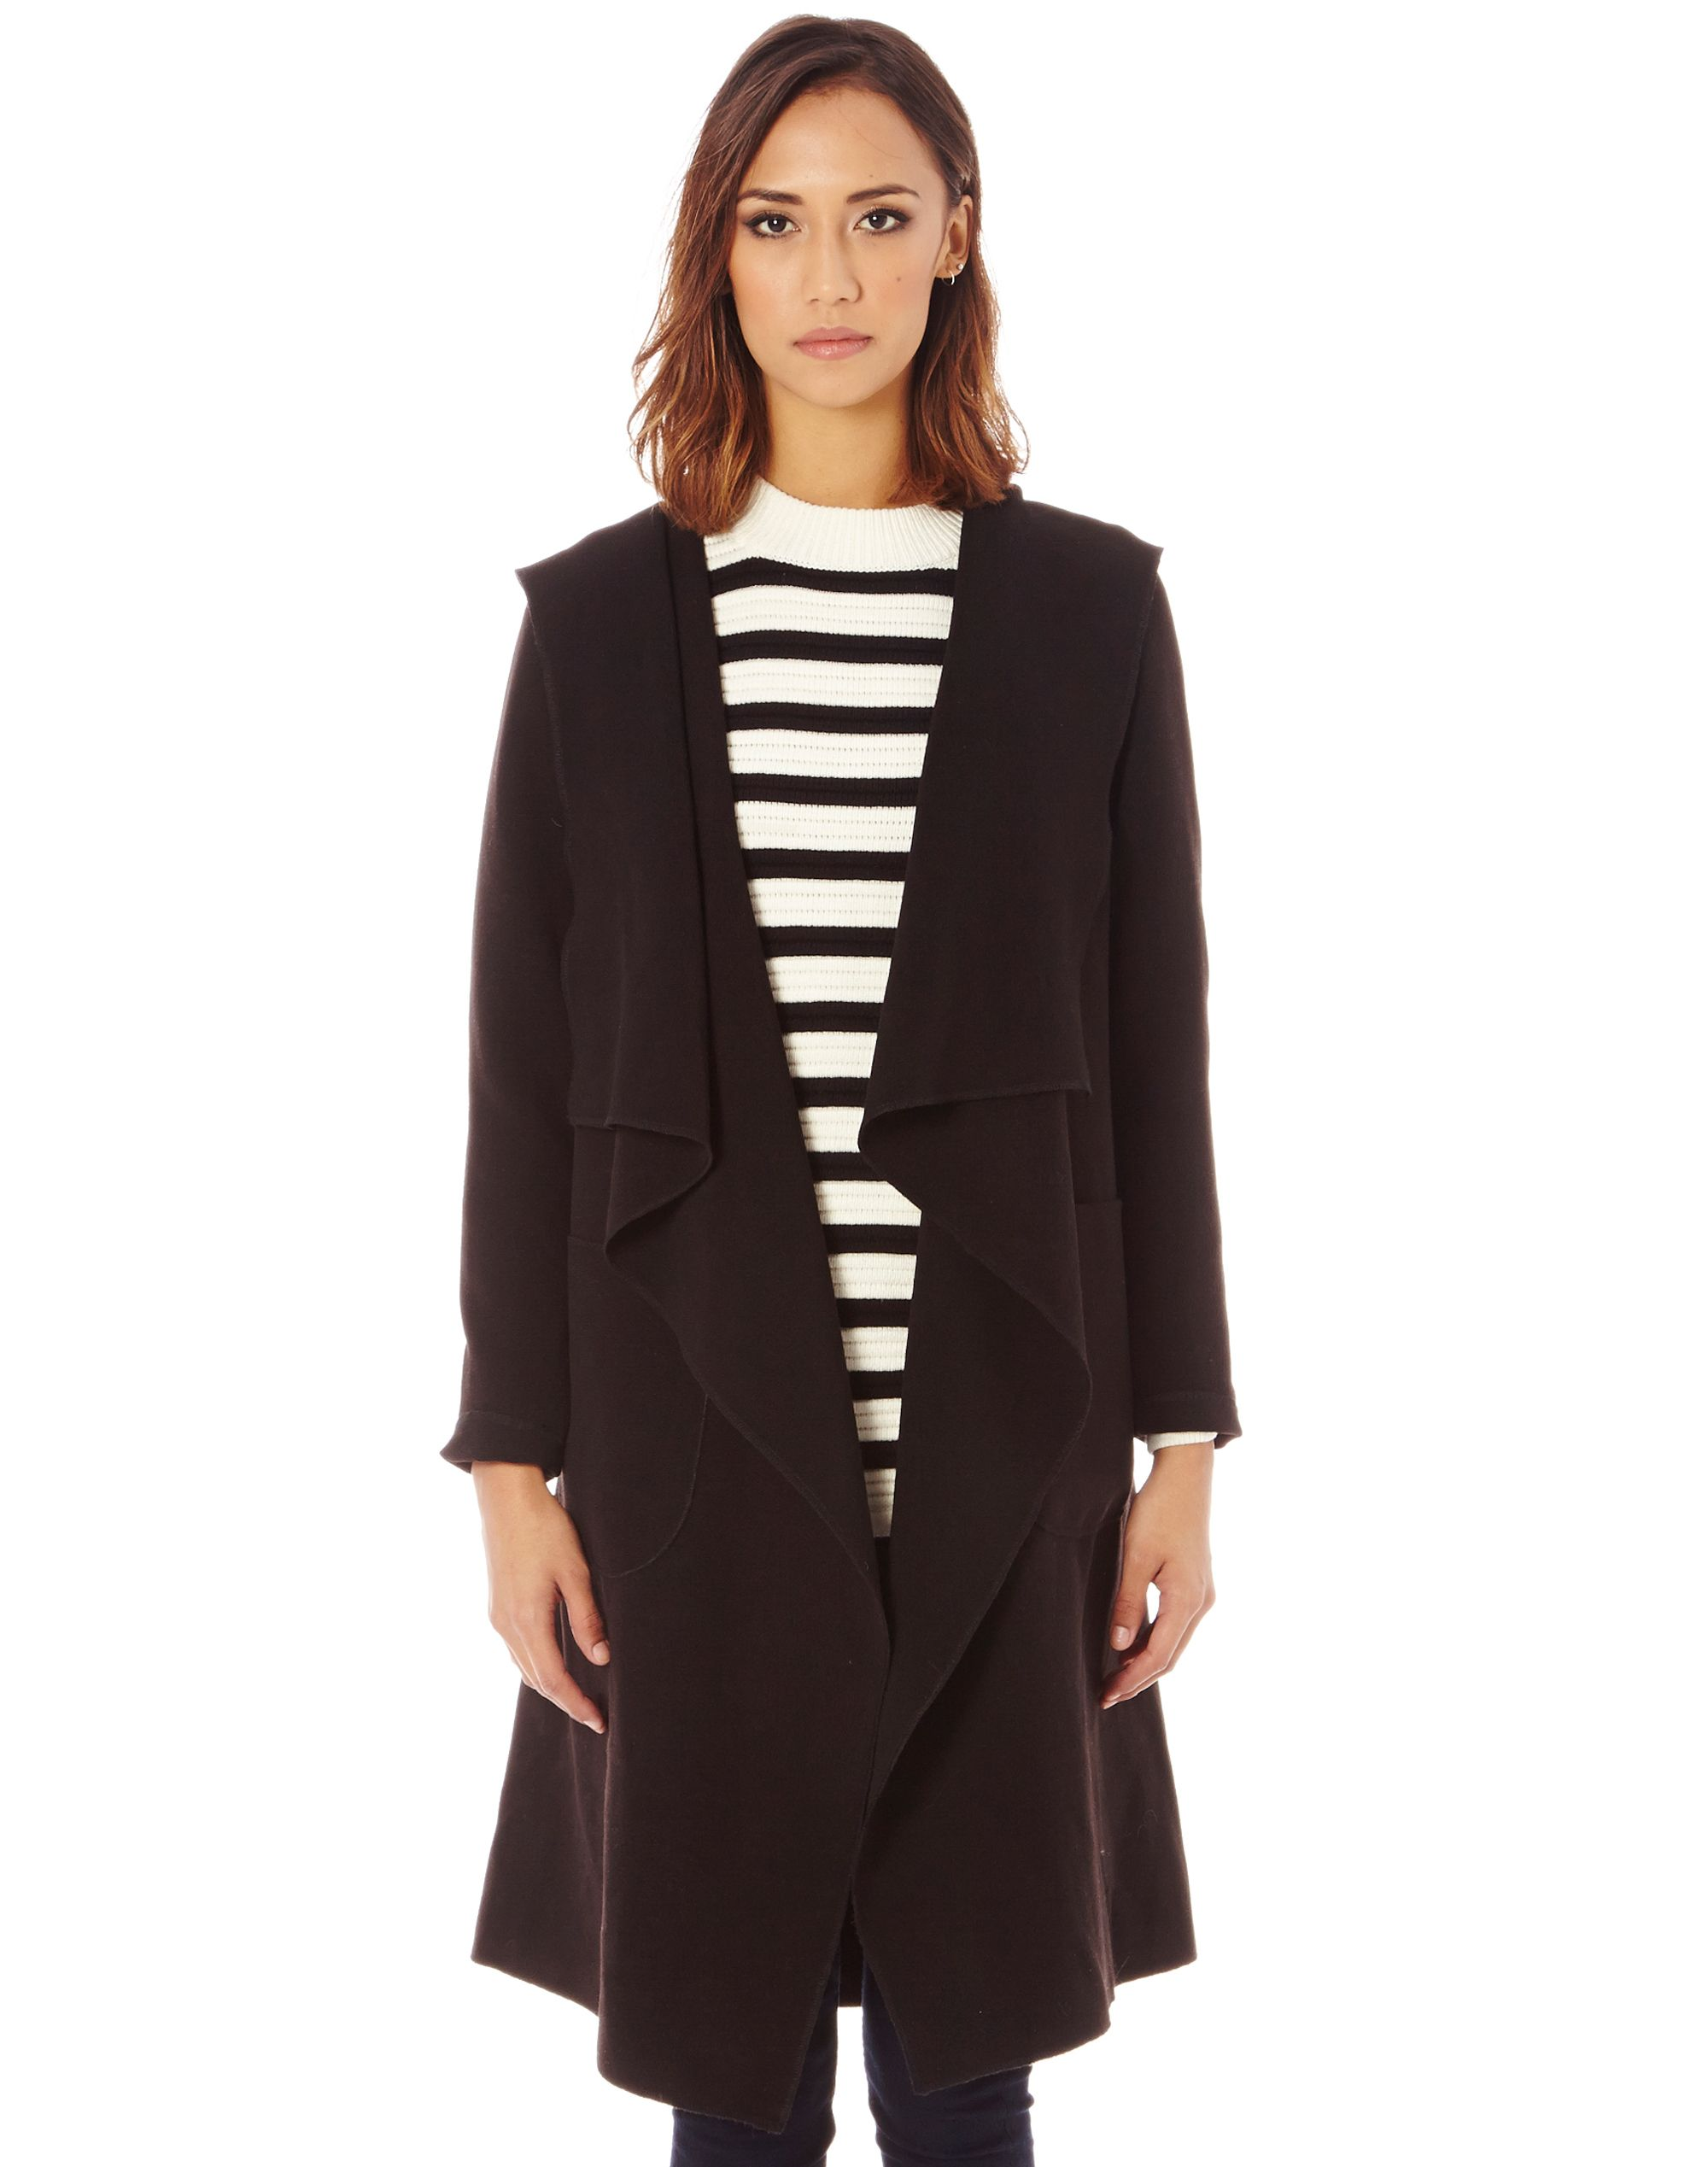 Hooded Trench Coat | Buy Online at Glassons | lizzzzzze board ...